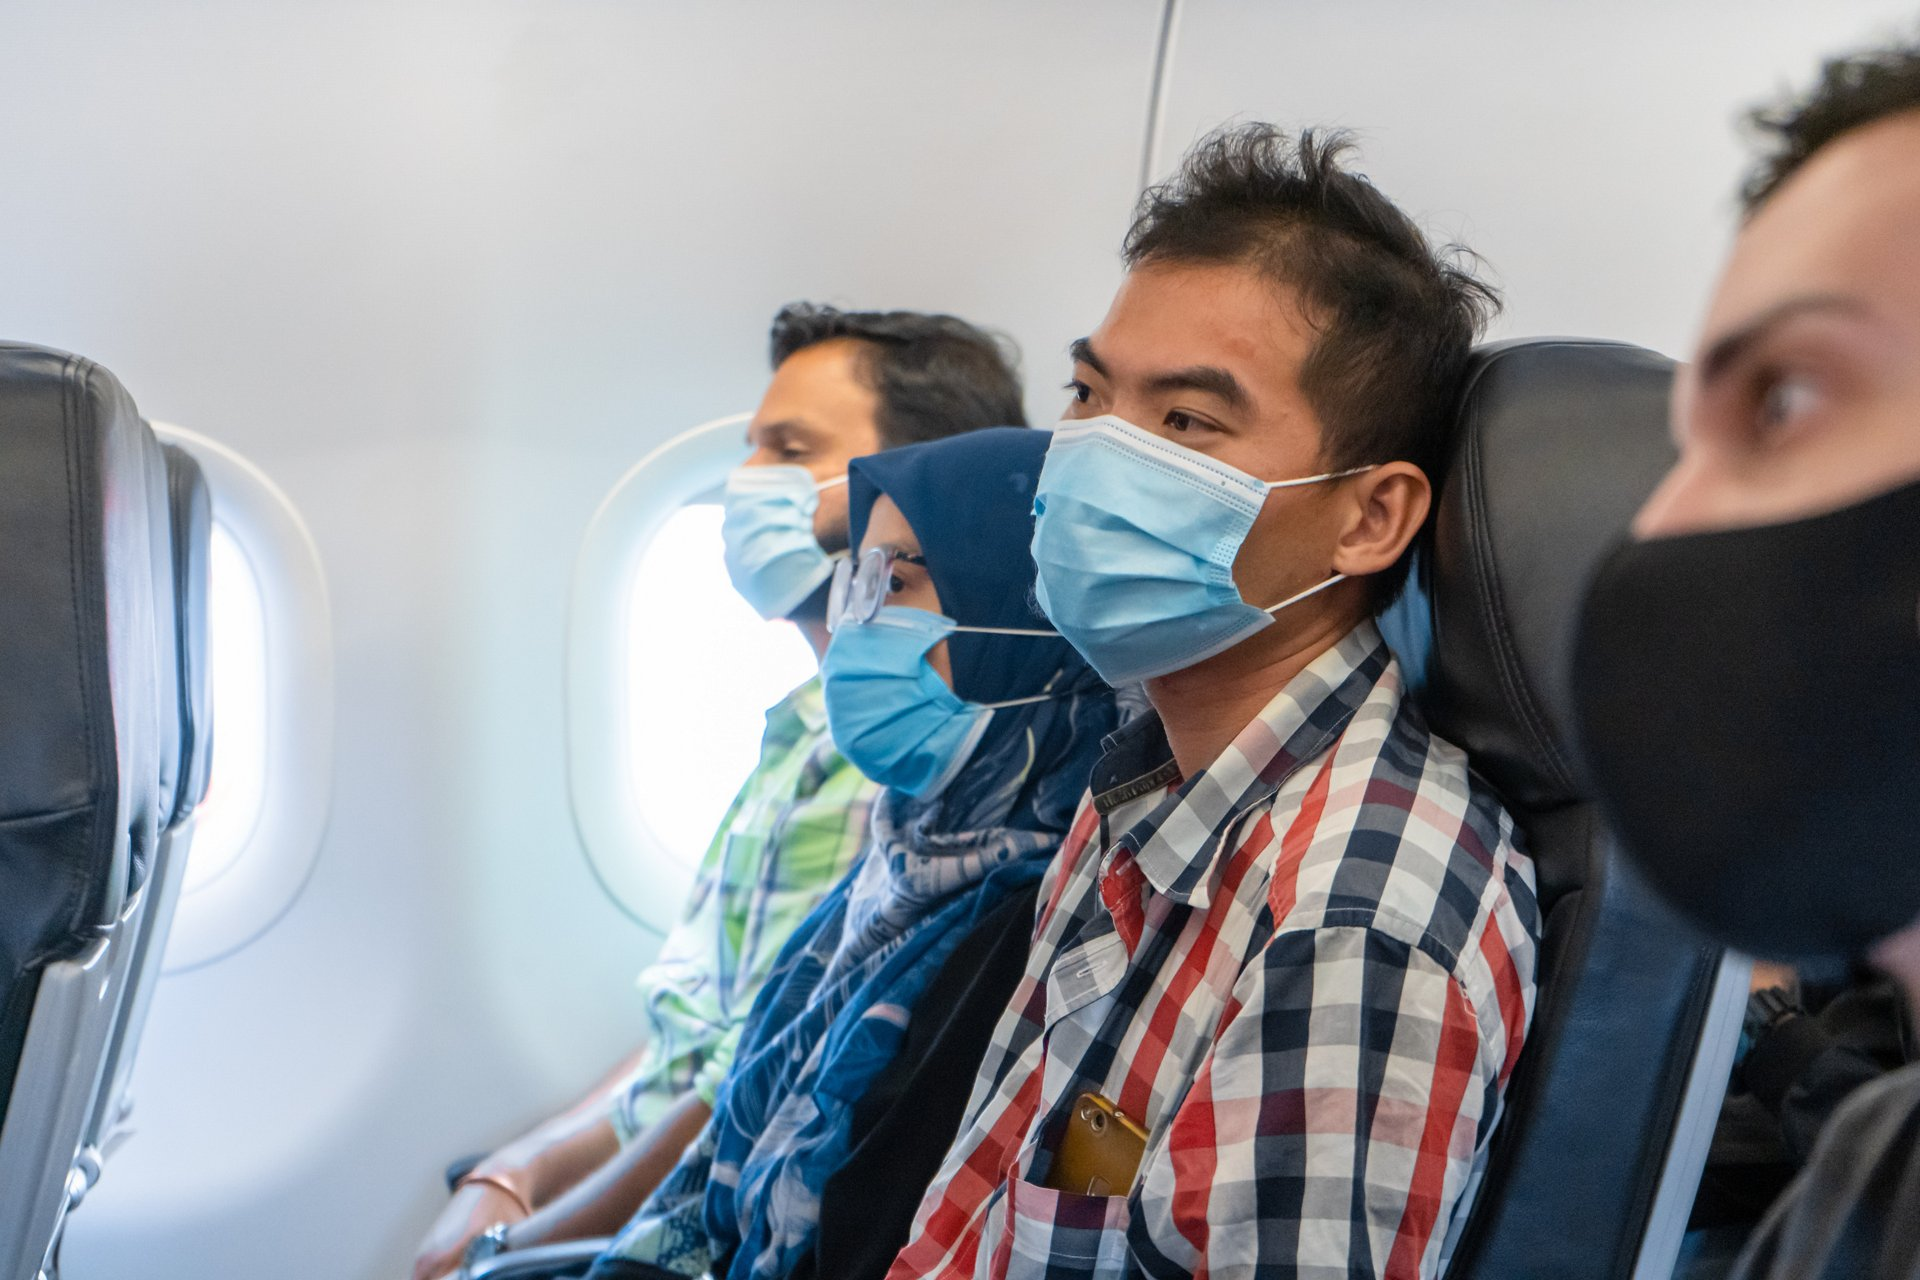 Airplane passengers are wearing medical masks on their faces. Air travel during the coronavirus pandemic.